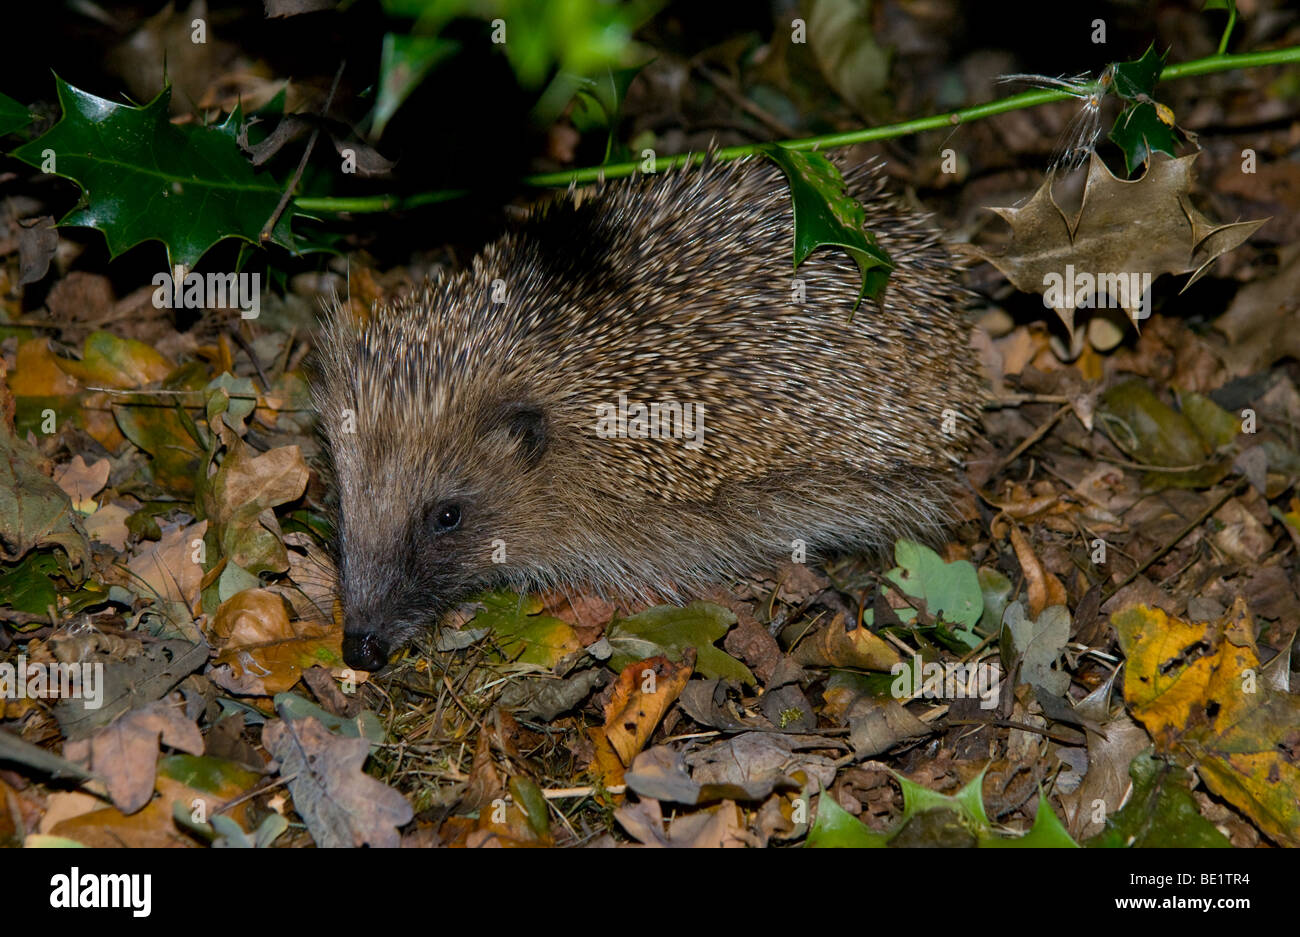 Hedgehog in it's natural surroundings in woodland. - Stock Image